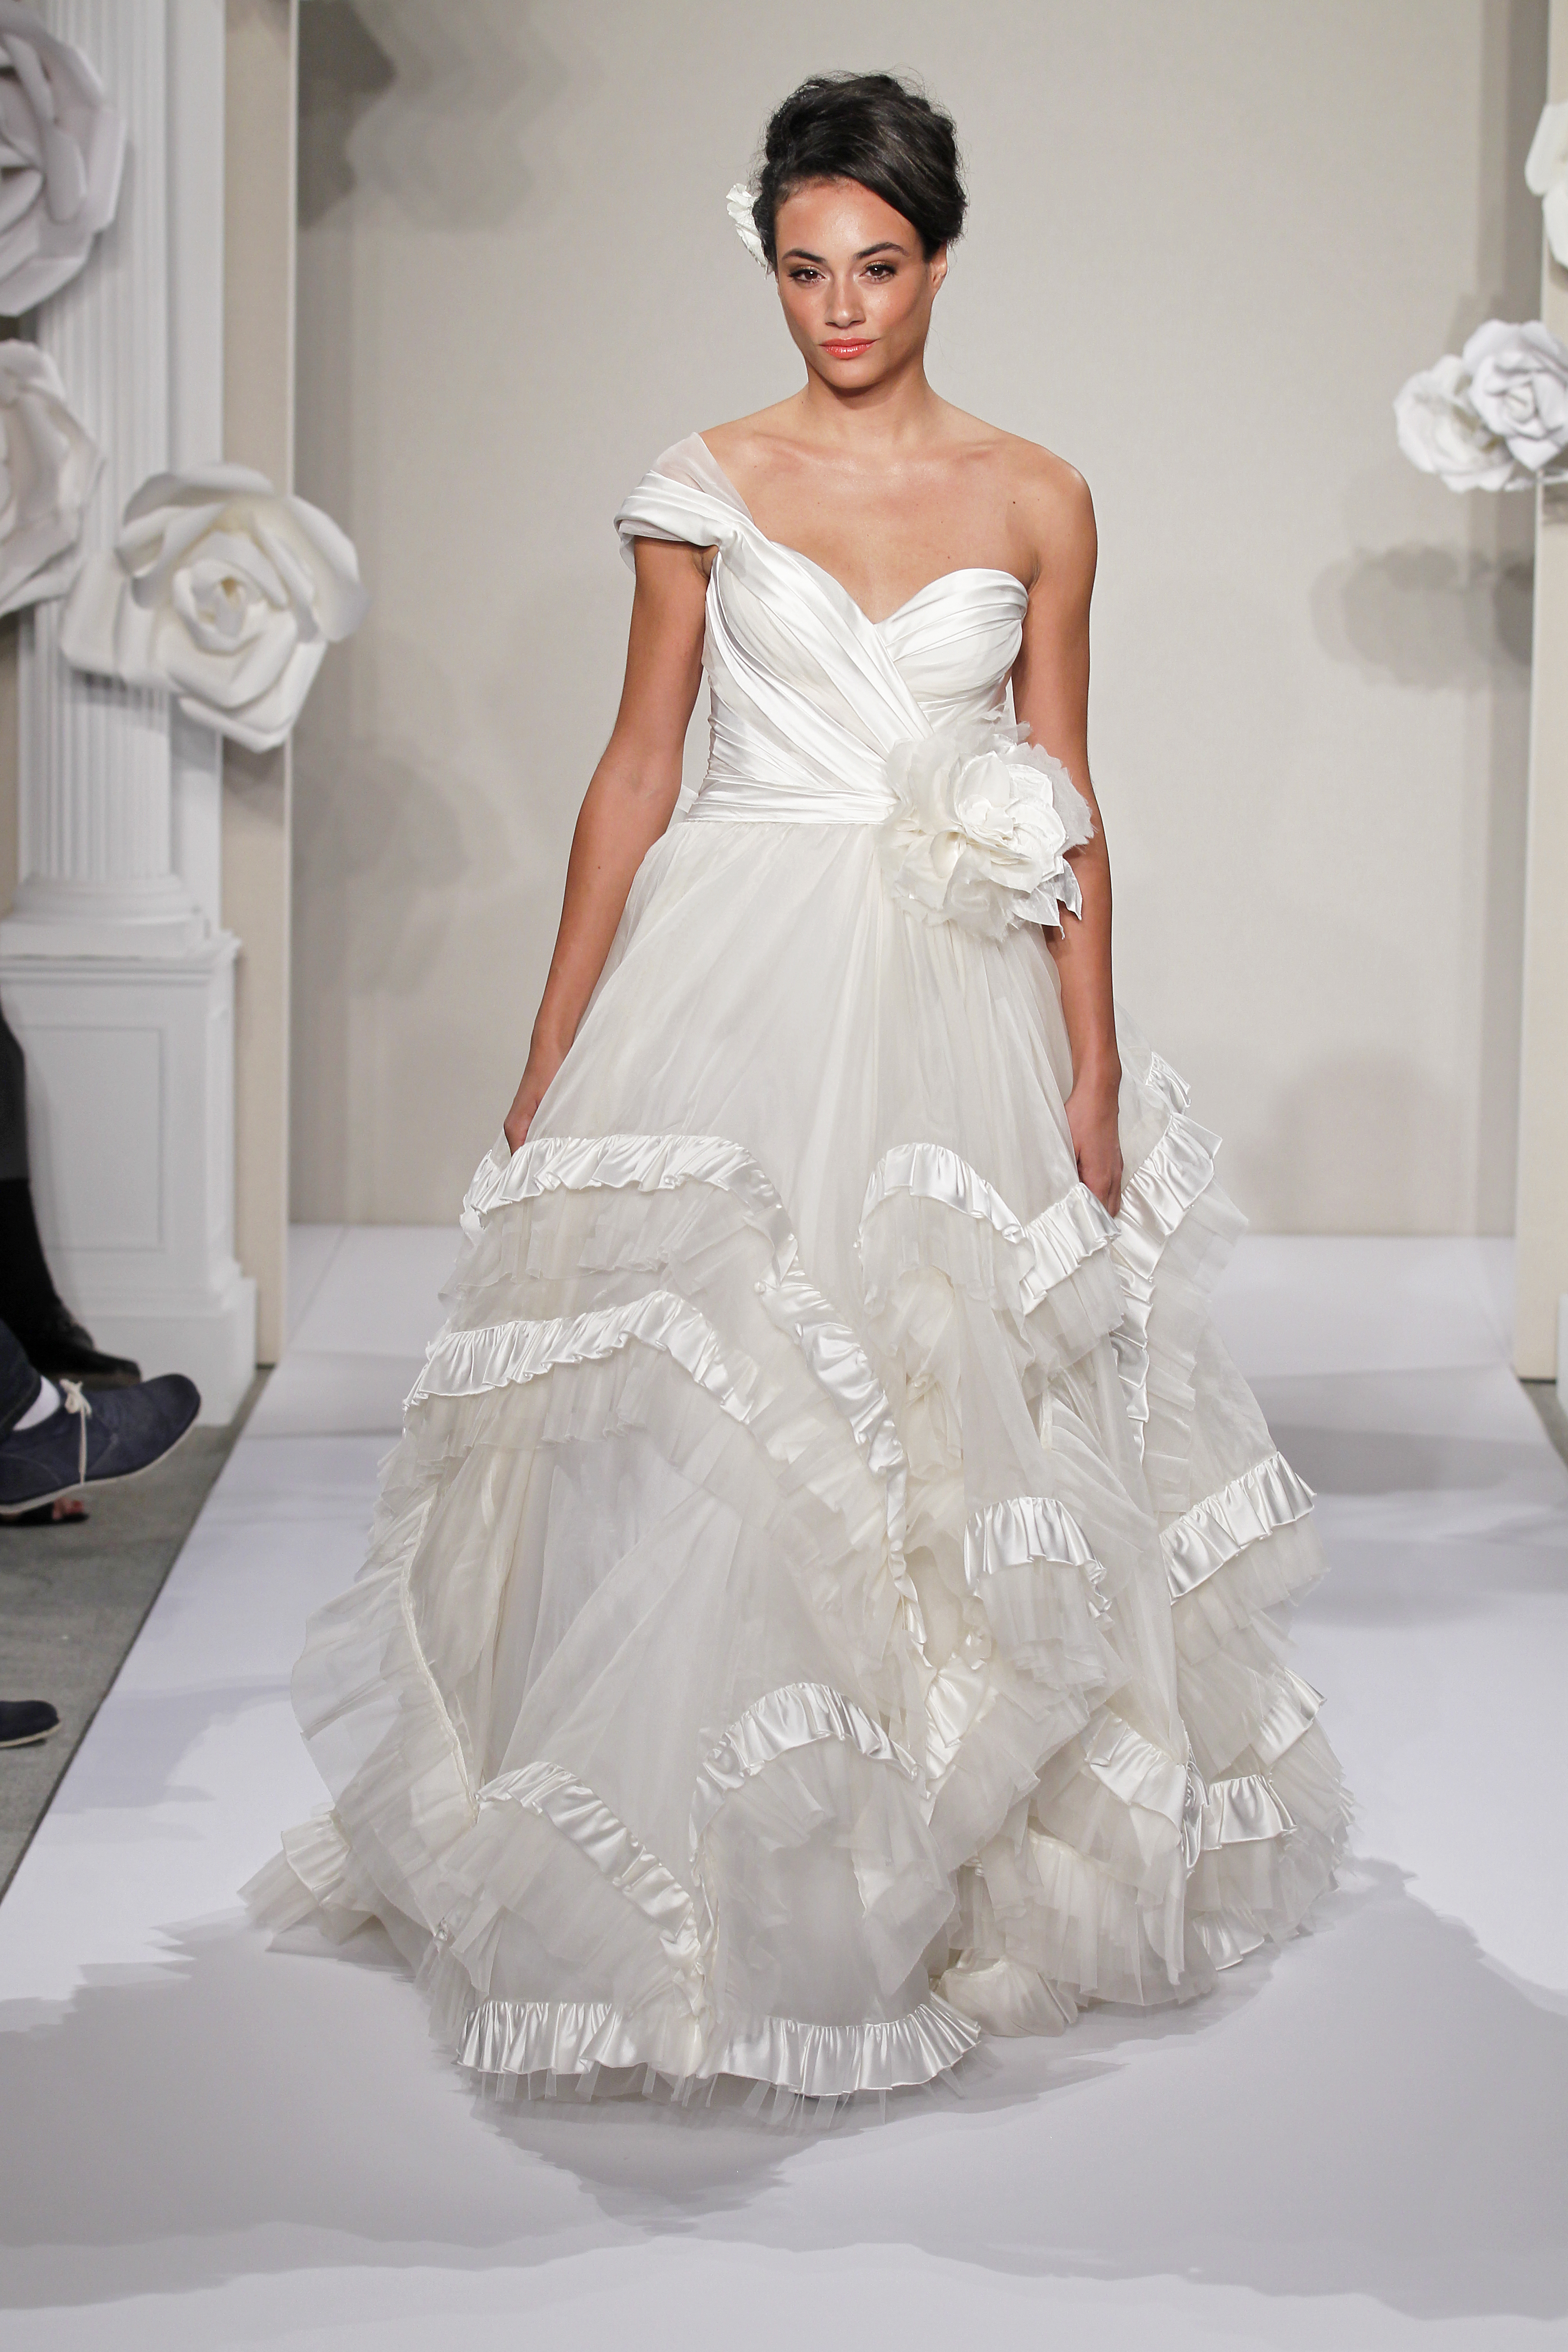 Wedding Dresses, One-Shoulder Wedding Dresses, Ball Gown Wedding Dresses, Ruffled Wedding Dresses, Lace Wedding Dresses, Romantic Wedding Dresses, Hollywood Glam Wedding Dresses, Fashion, white, ivory, Flowers, Shabby Chic, Romantic, Lace, Empire, Floor, Silk, Ruffles, Sleeveless, Pnina tornai, Ball gown, One-shoulder, hollywood glam, klienfeld, Flower Wedding Dresses, Silk Wedding Dresses, Floor Wedding Dresses, Shabby Chic Wedding Dresses